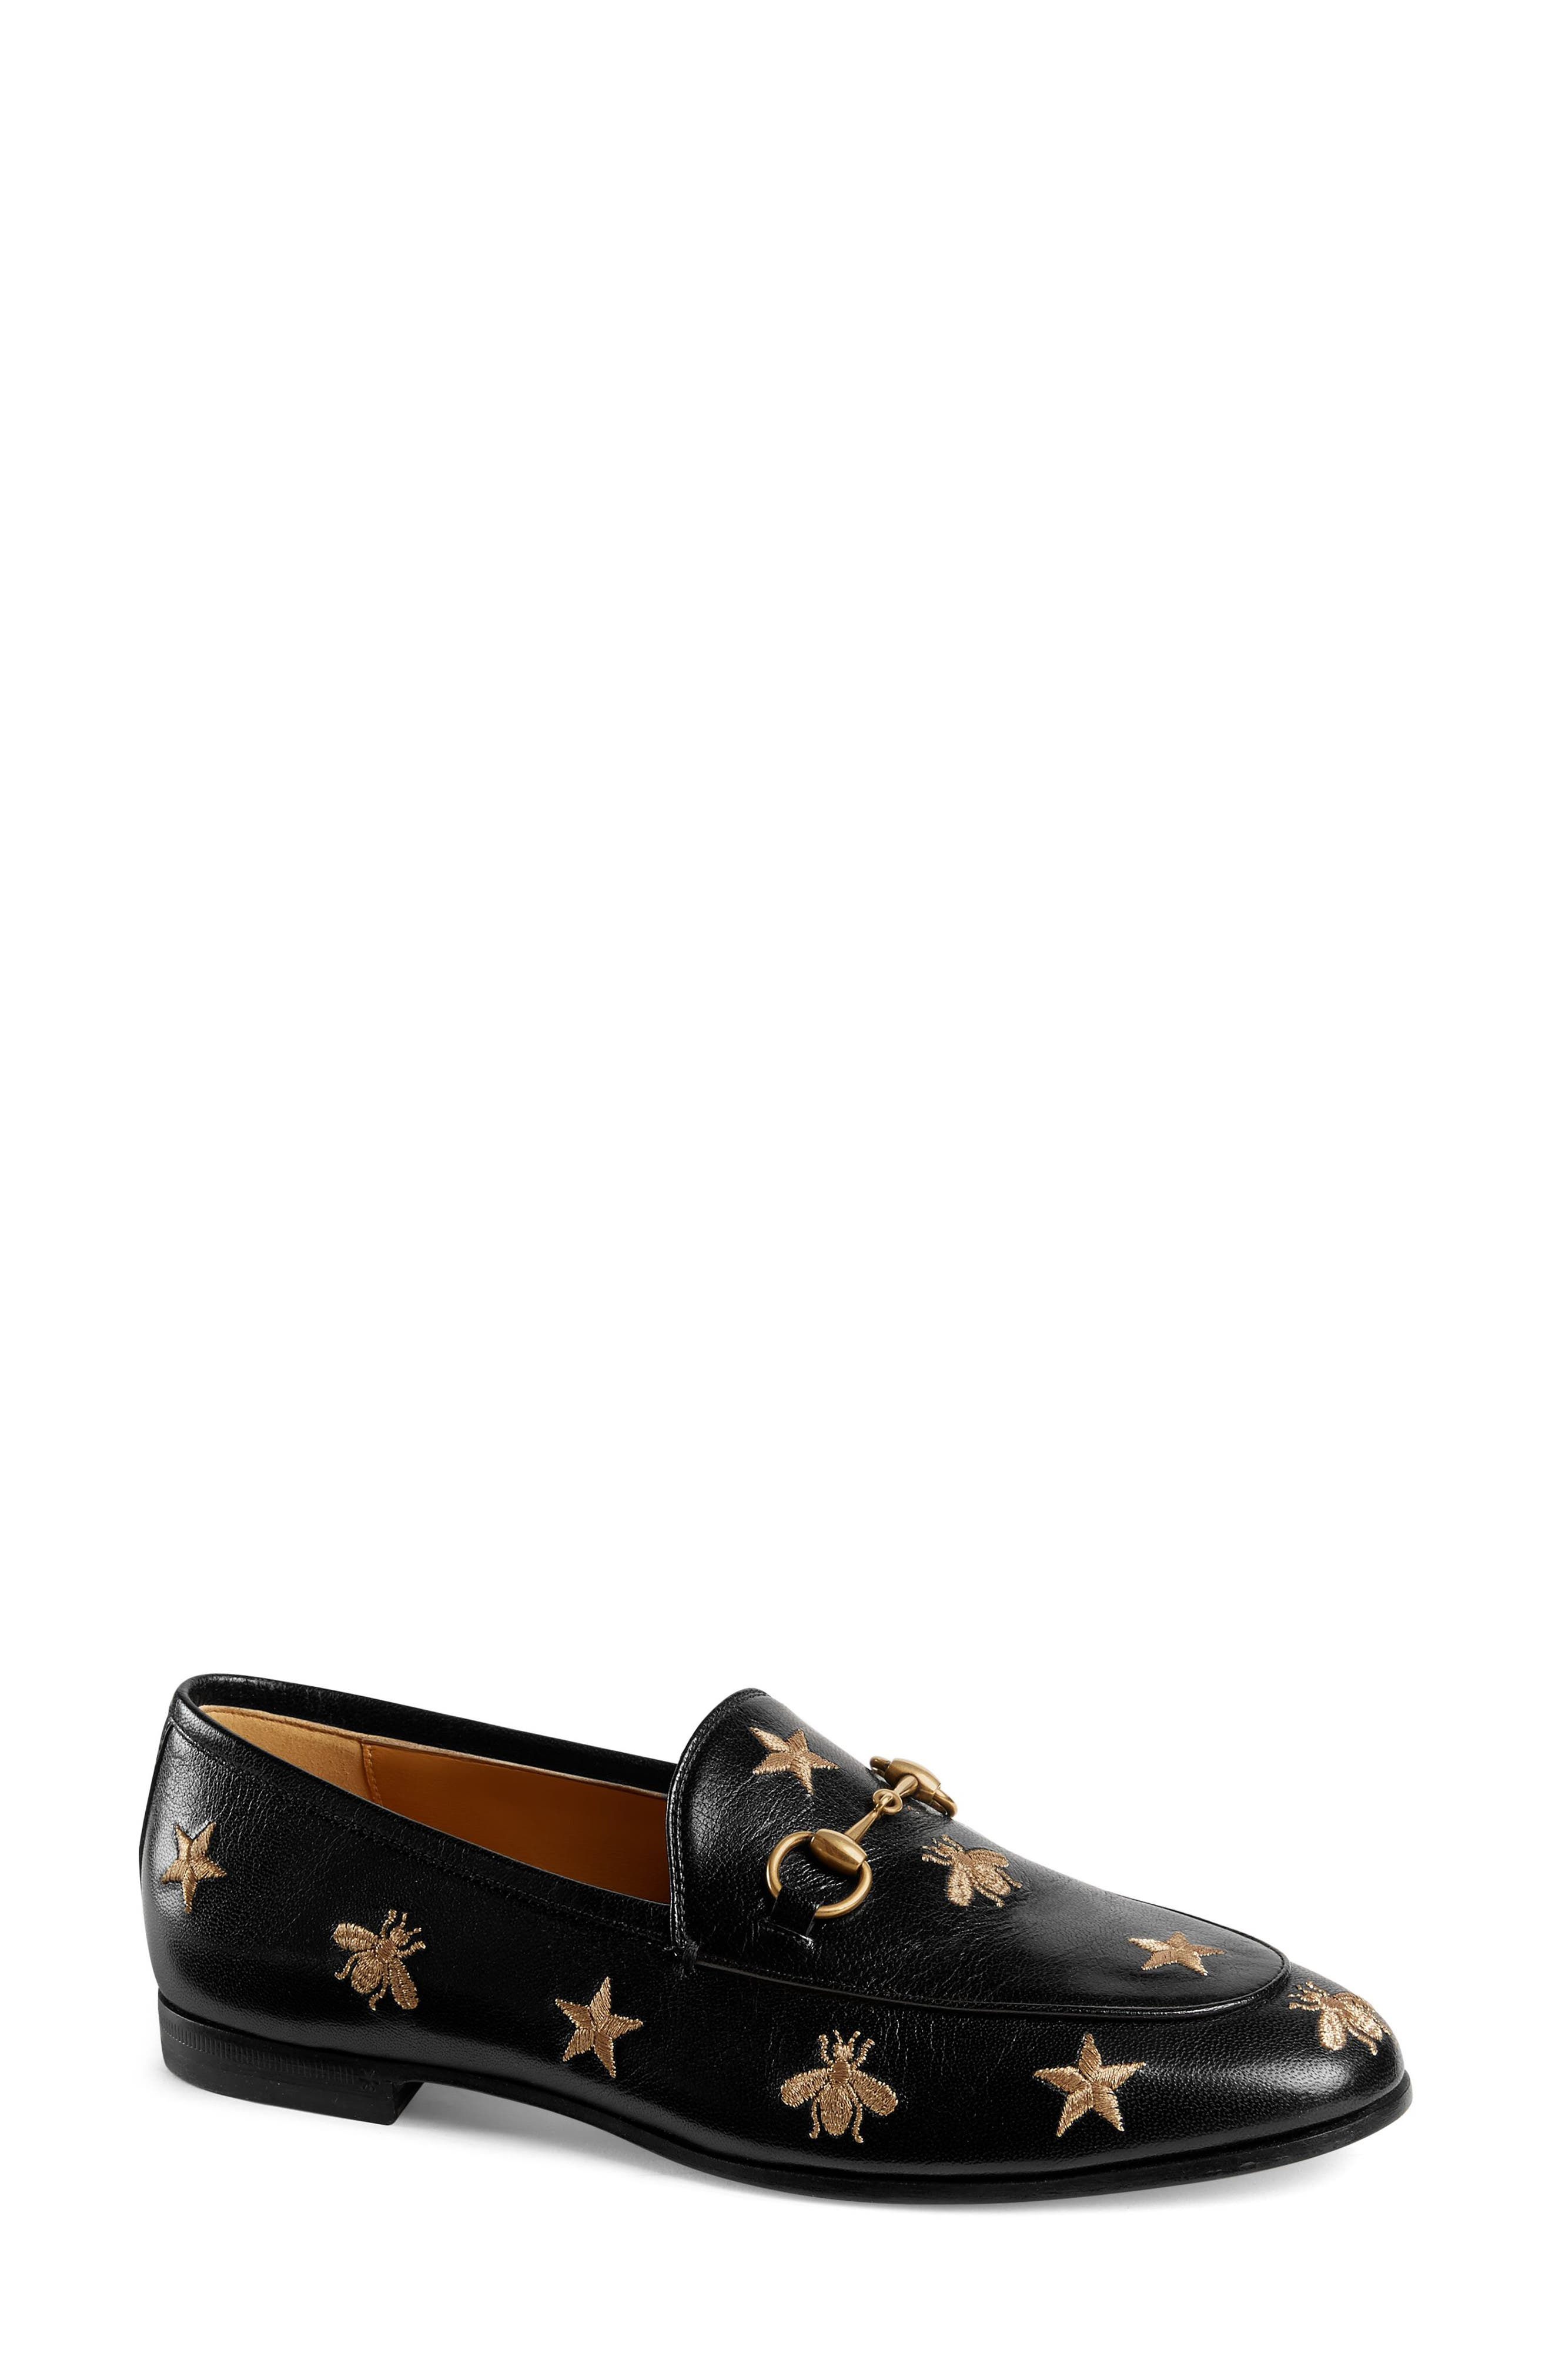 GUCCI, Jordaan Embroidered Bee Loafer, Main thumbnail 1, color, BLACK